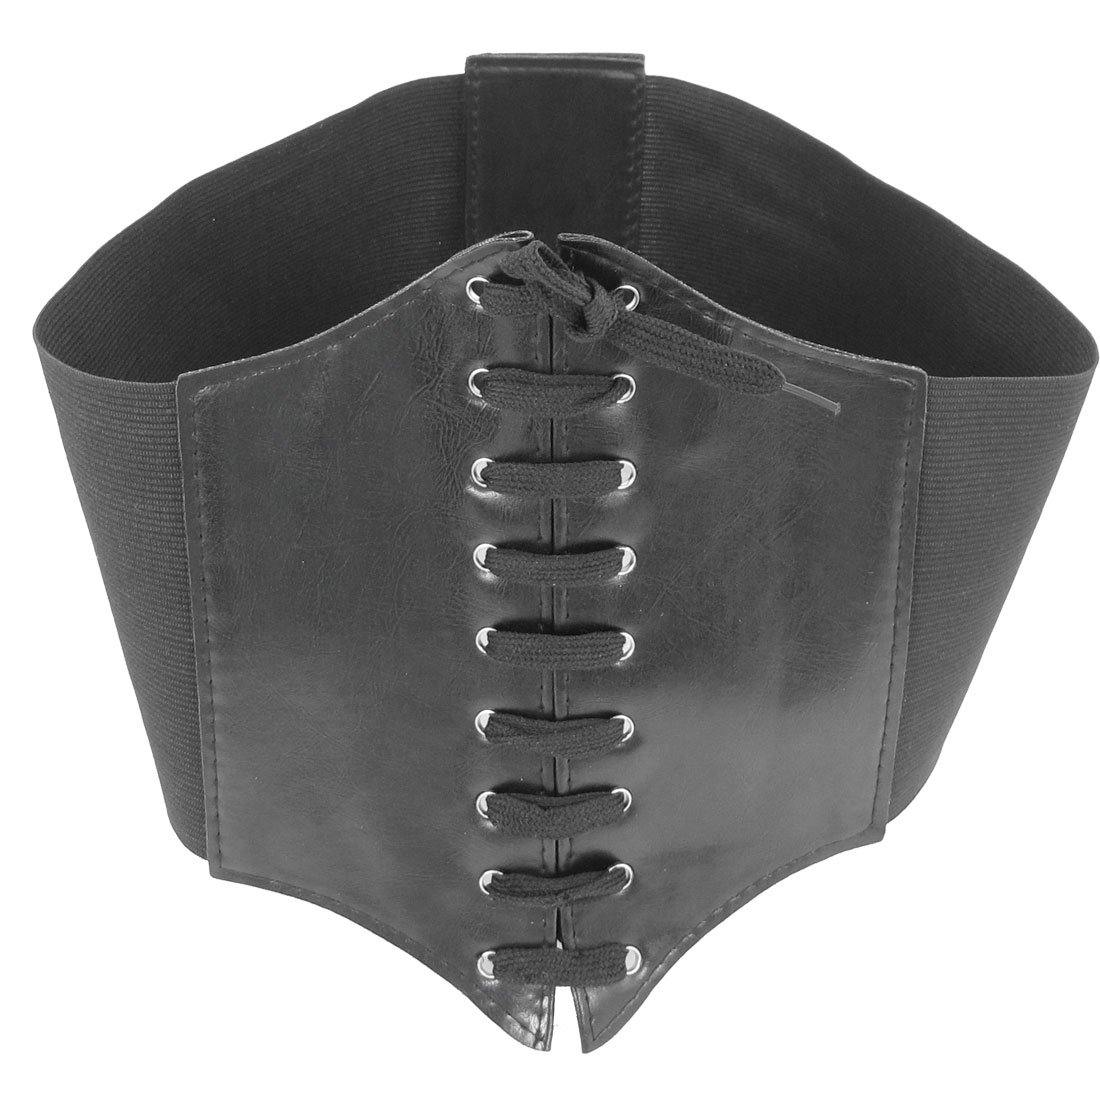 Hook Loop Fastener Black Stretchy Waist Cinch Belt Waistband Corset for Ladies